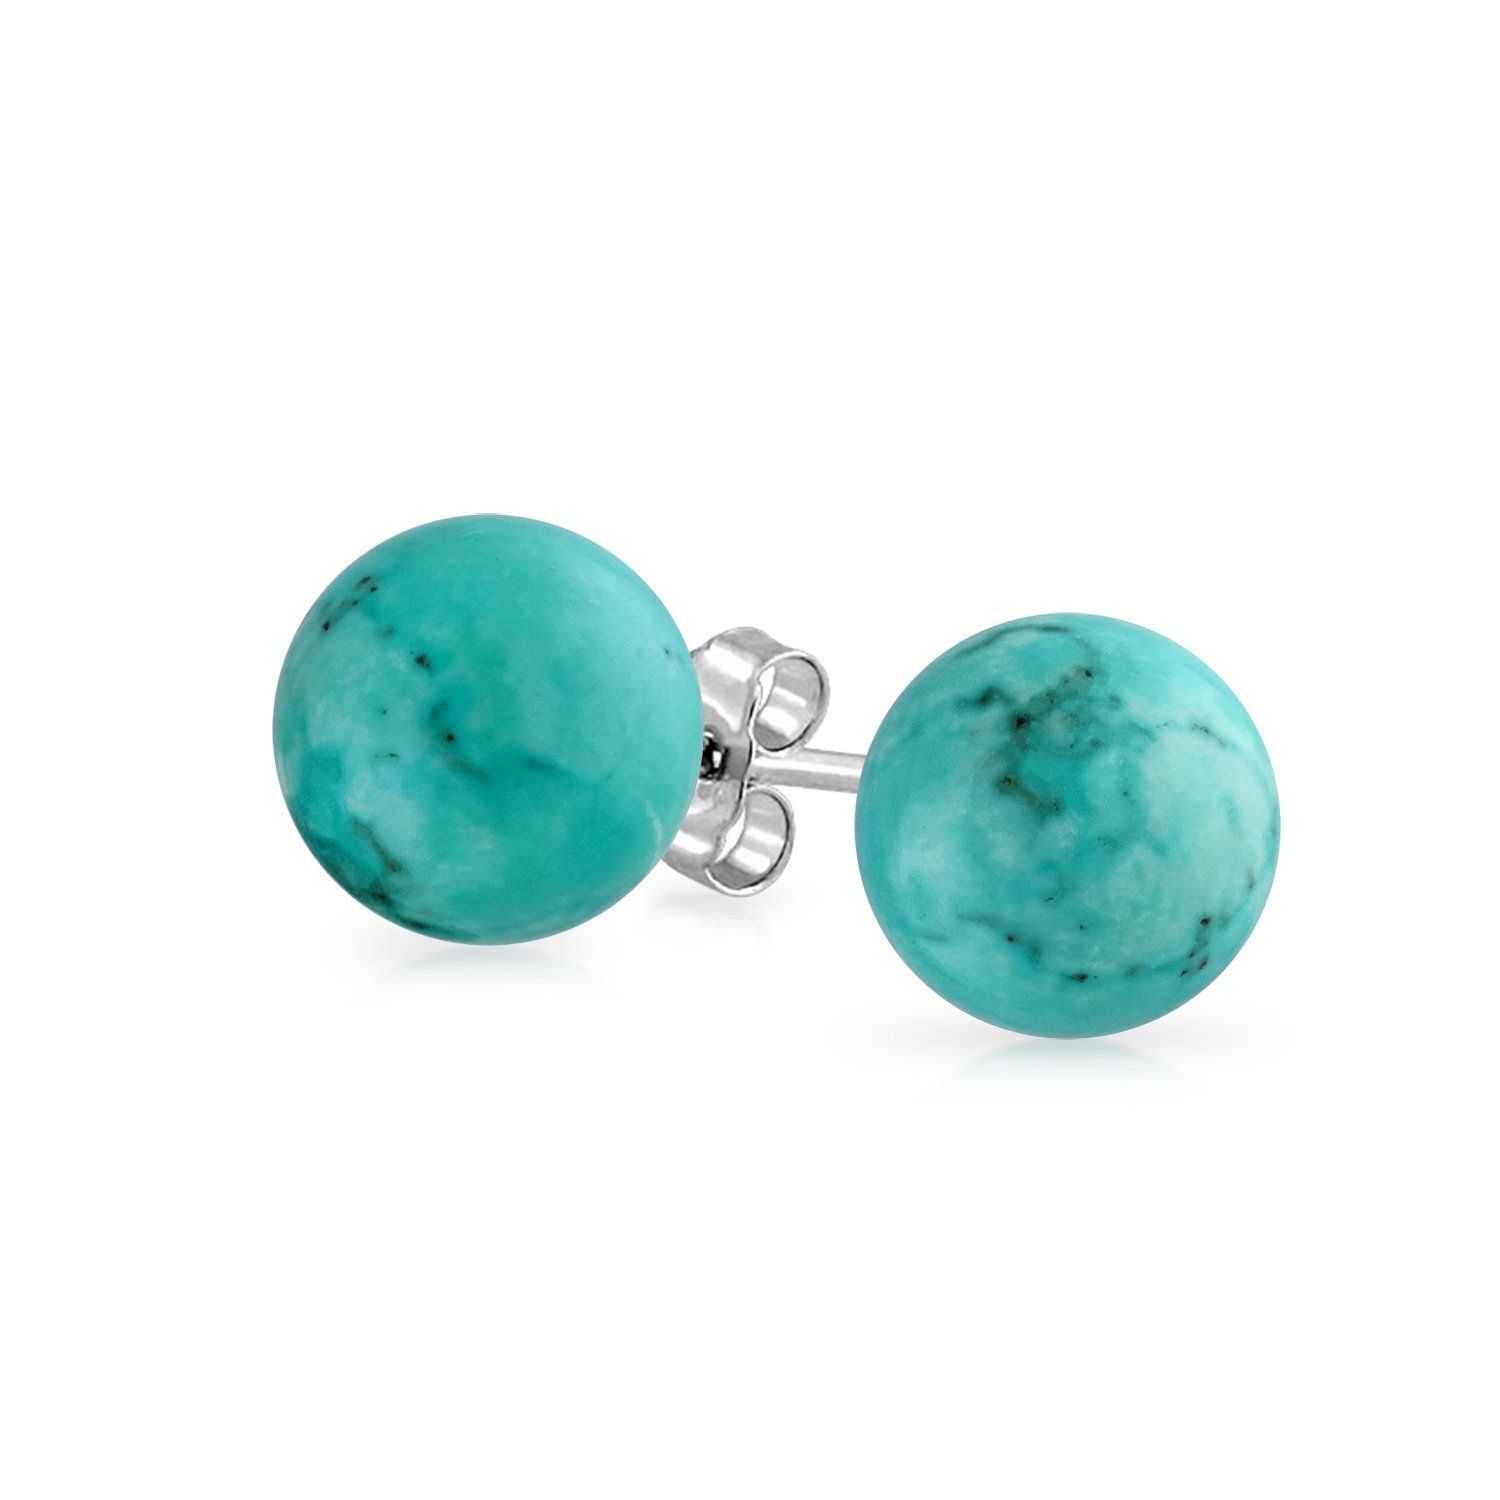 Reconstituted Turquoise Sterling Silver Ball Stud Earrings 10mm